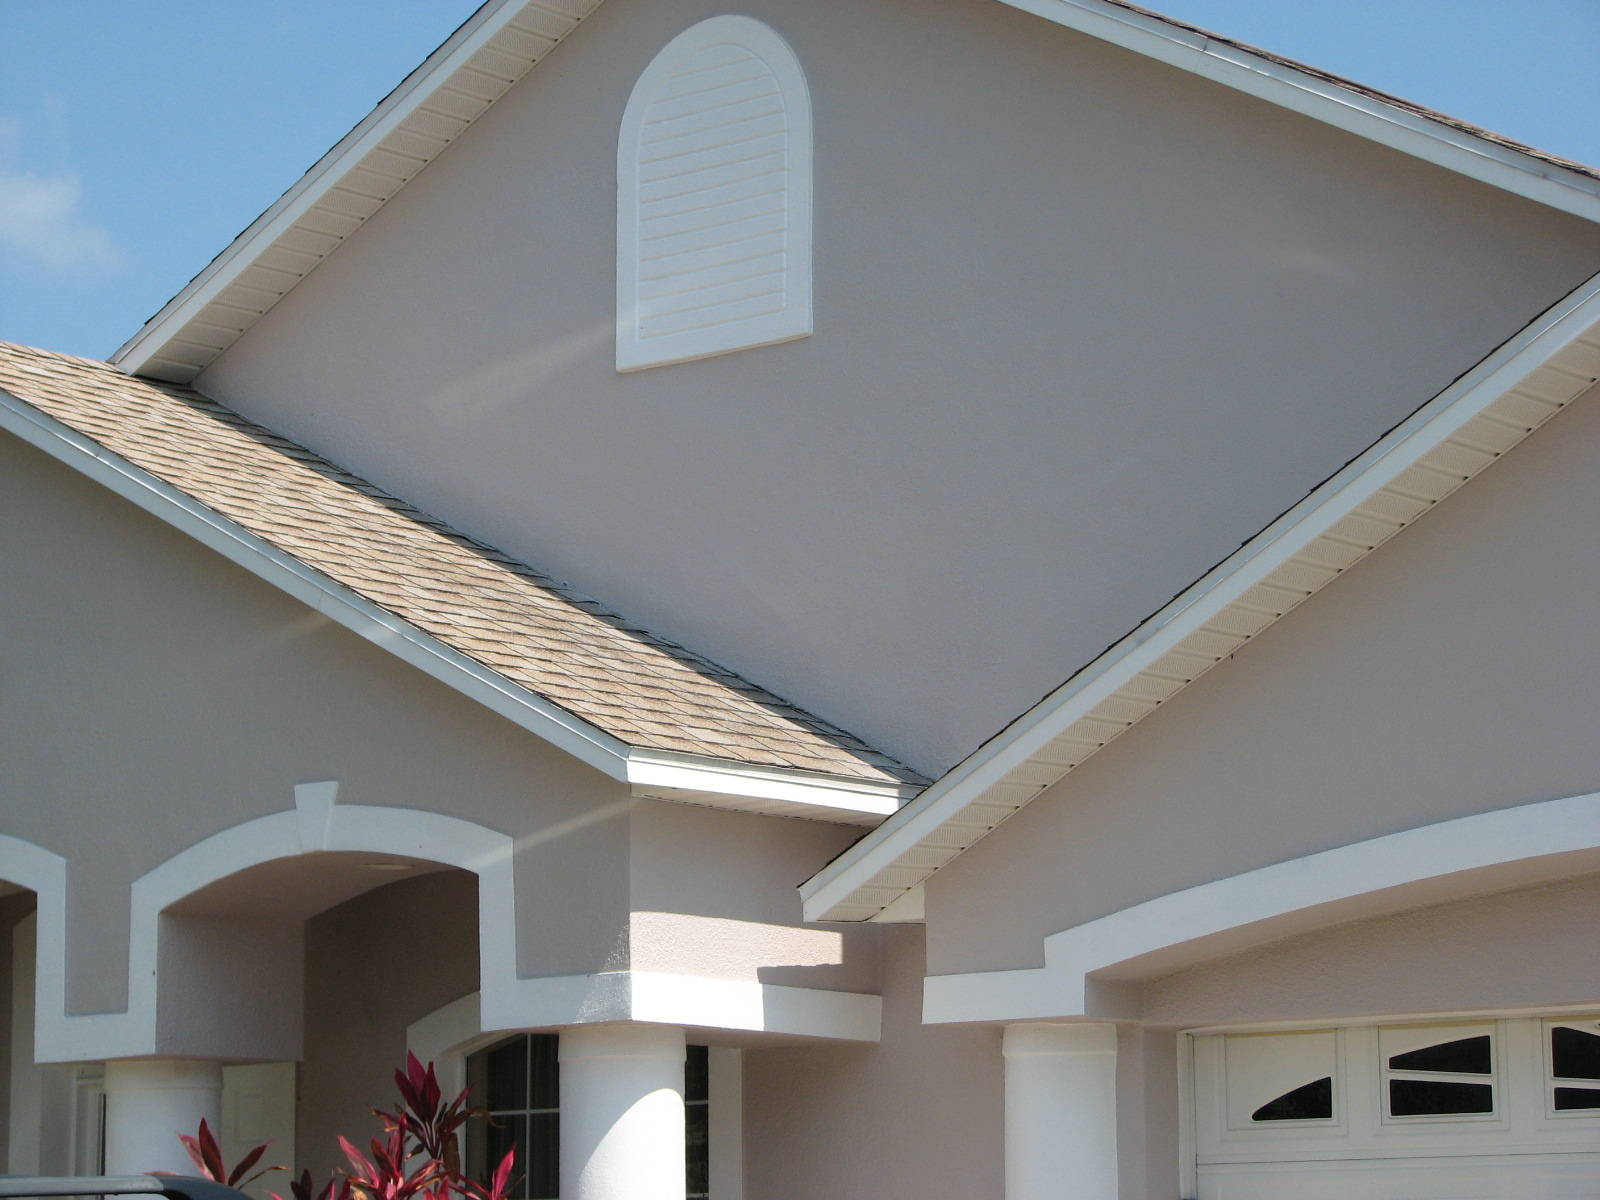 merritt island stucco repair and exterior painting before and after. Black Bedroom Furniture Sets. Home Design Ideas